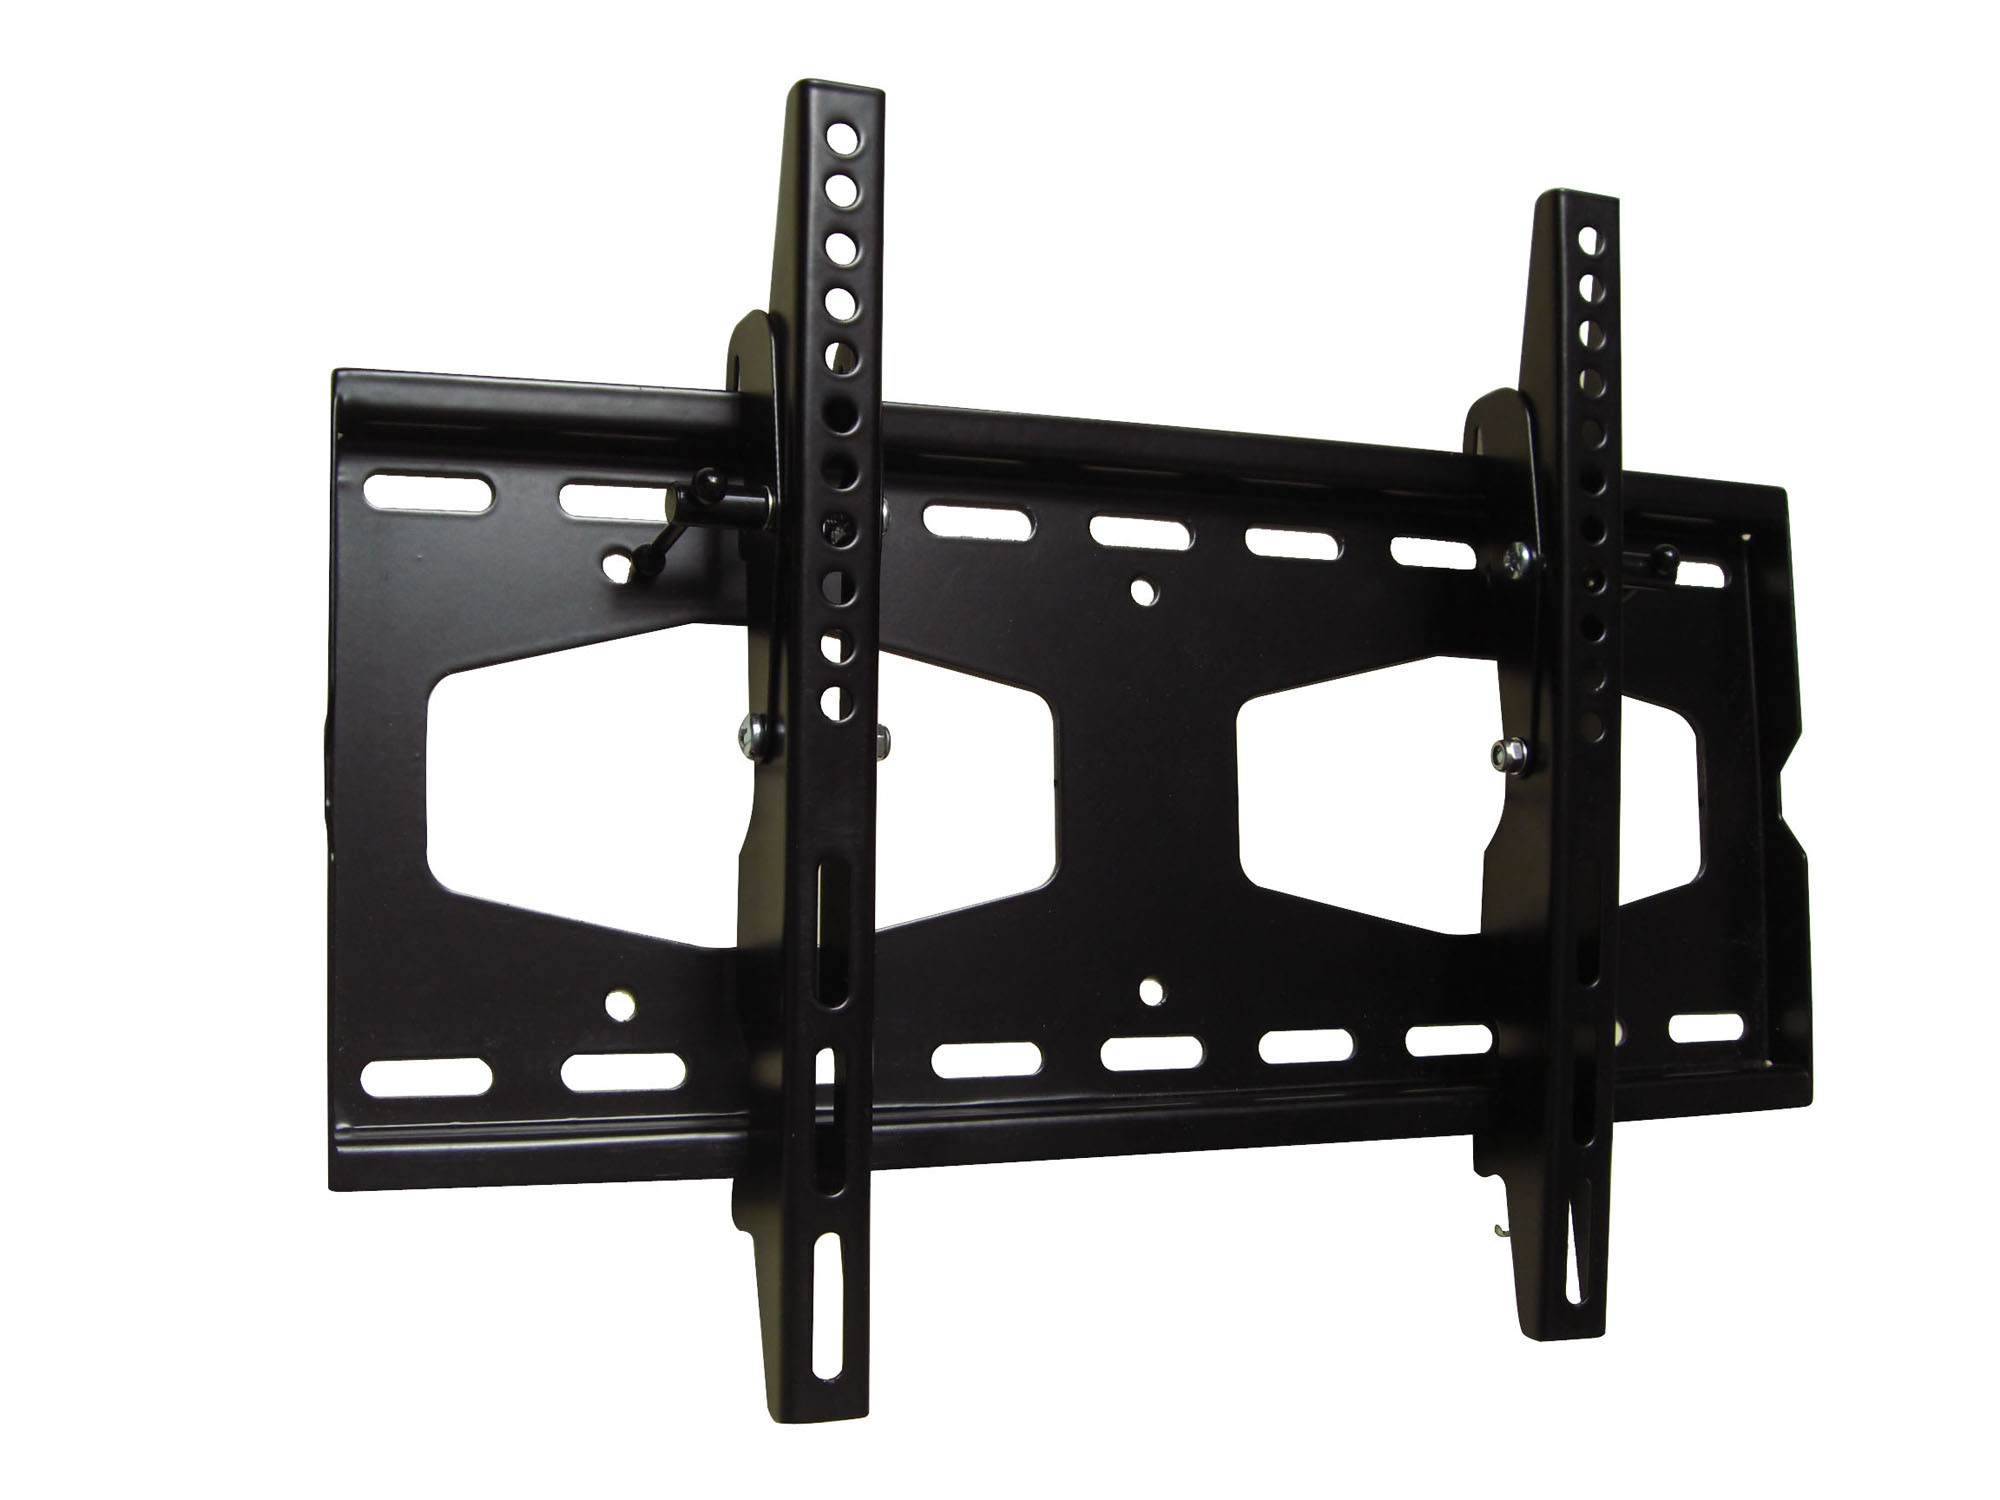 wall mount tv bracket bing images. Black Bedroom Furniture Sets. Home Design Ideas